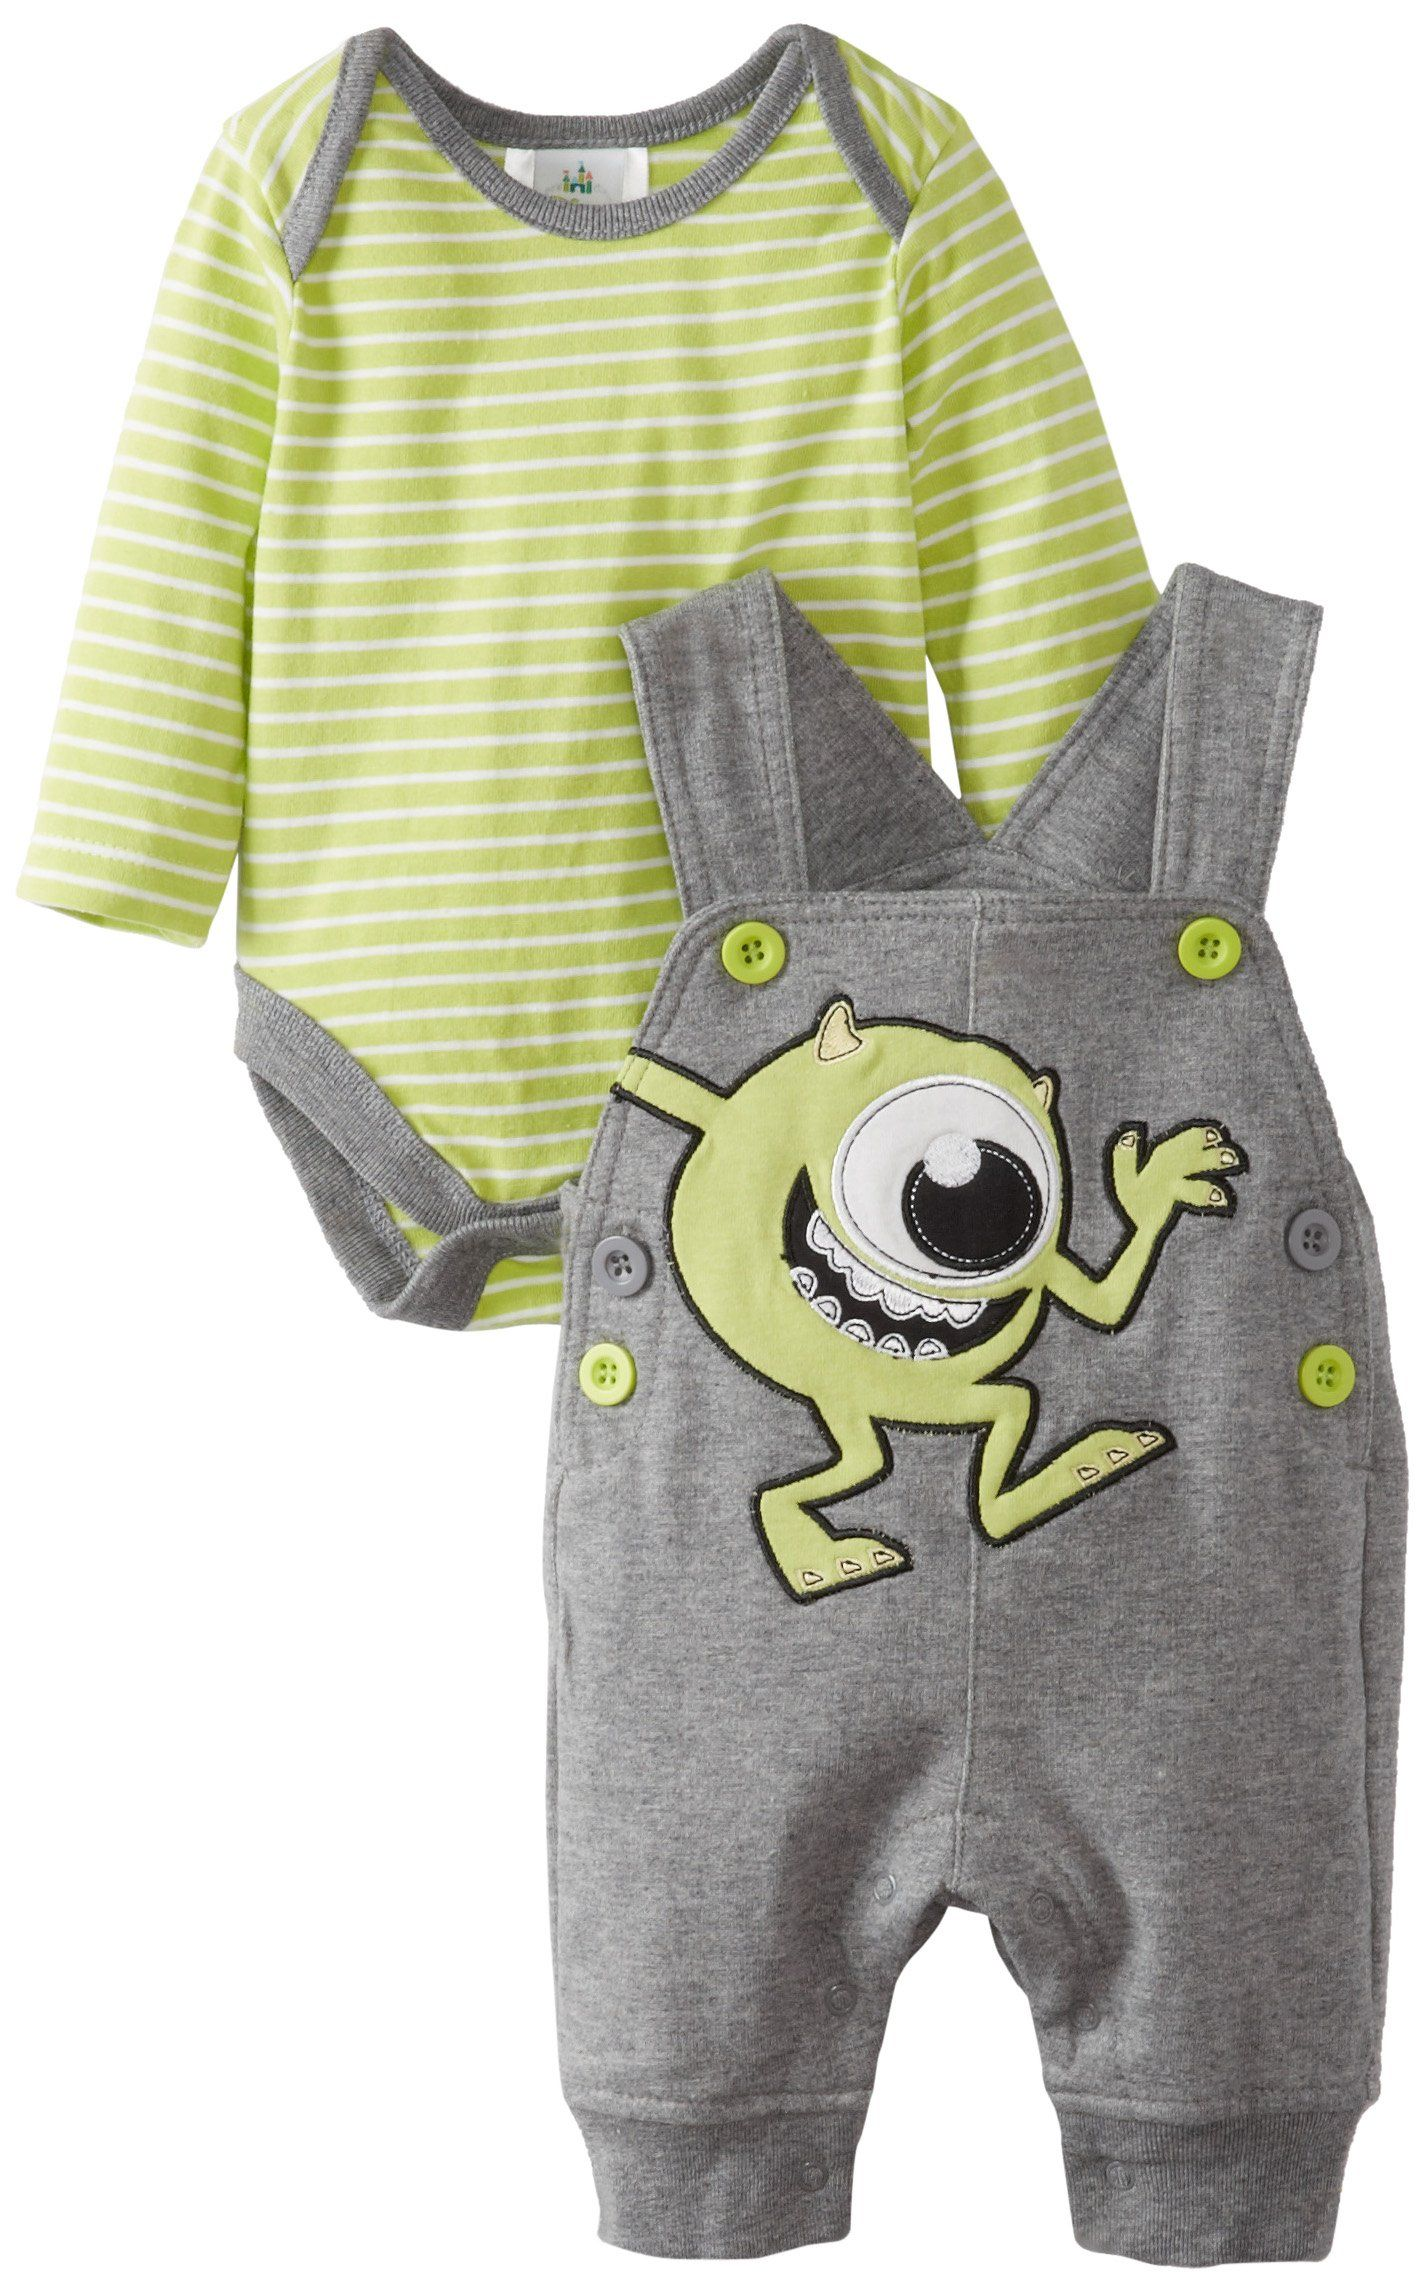 f6cf6bfe5 Disney Baby Baby-Boys Newborn 2 Piece Overall Set, Grey/Green, 0-3 Months